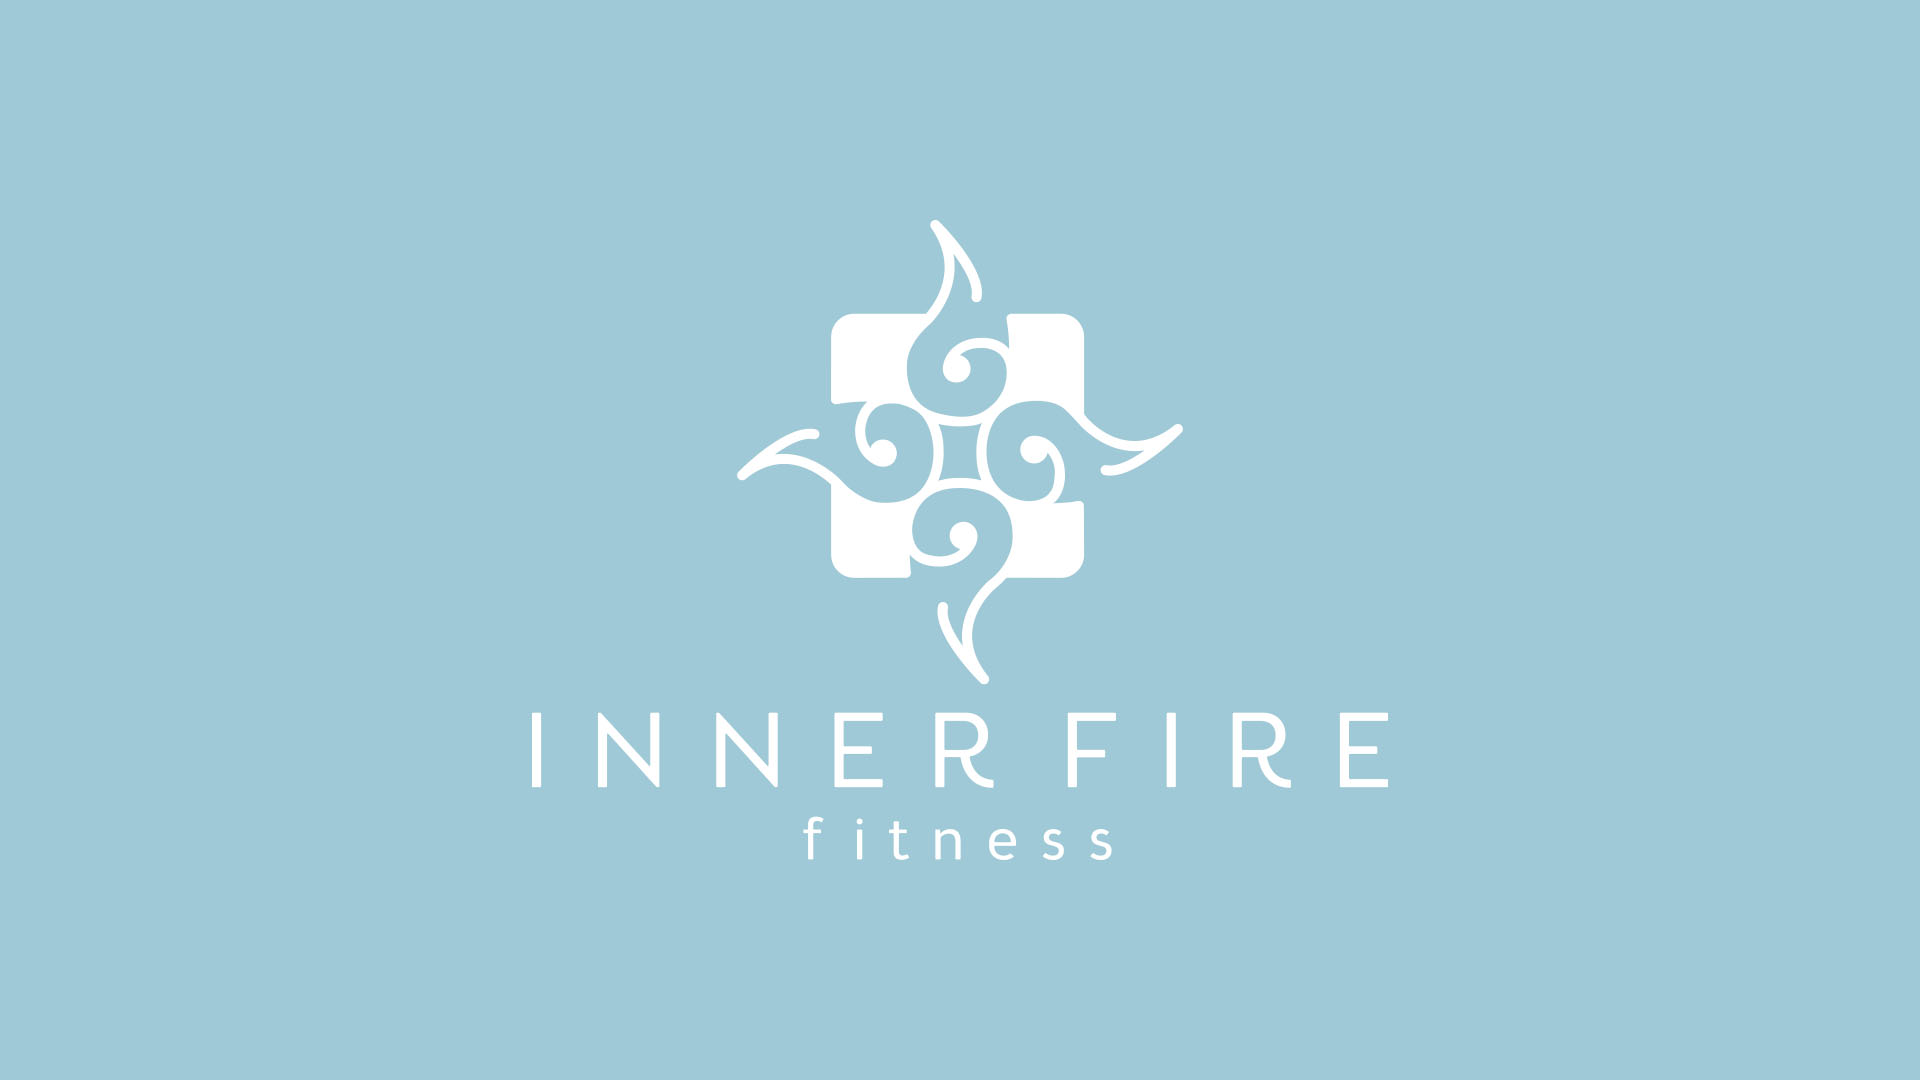 INNER FIRE FITNESS BRAND IDENTITY AND WEBSITE